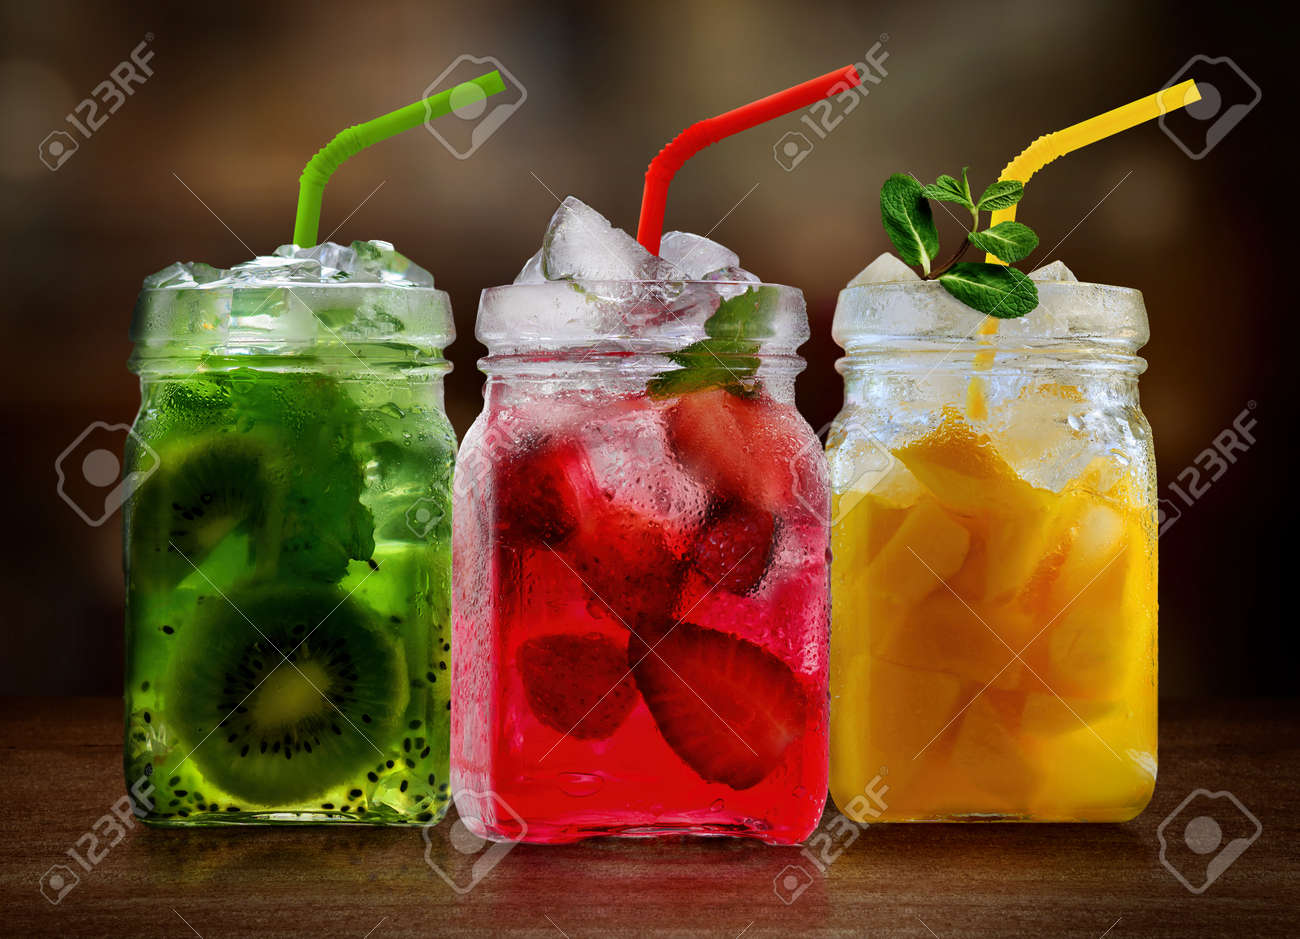 Refreshing fruits cocktails in glass jars on wooden table - 171548533